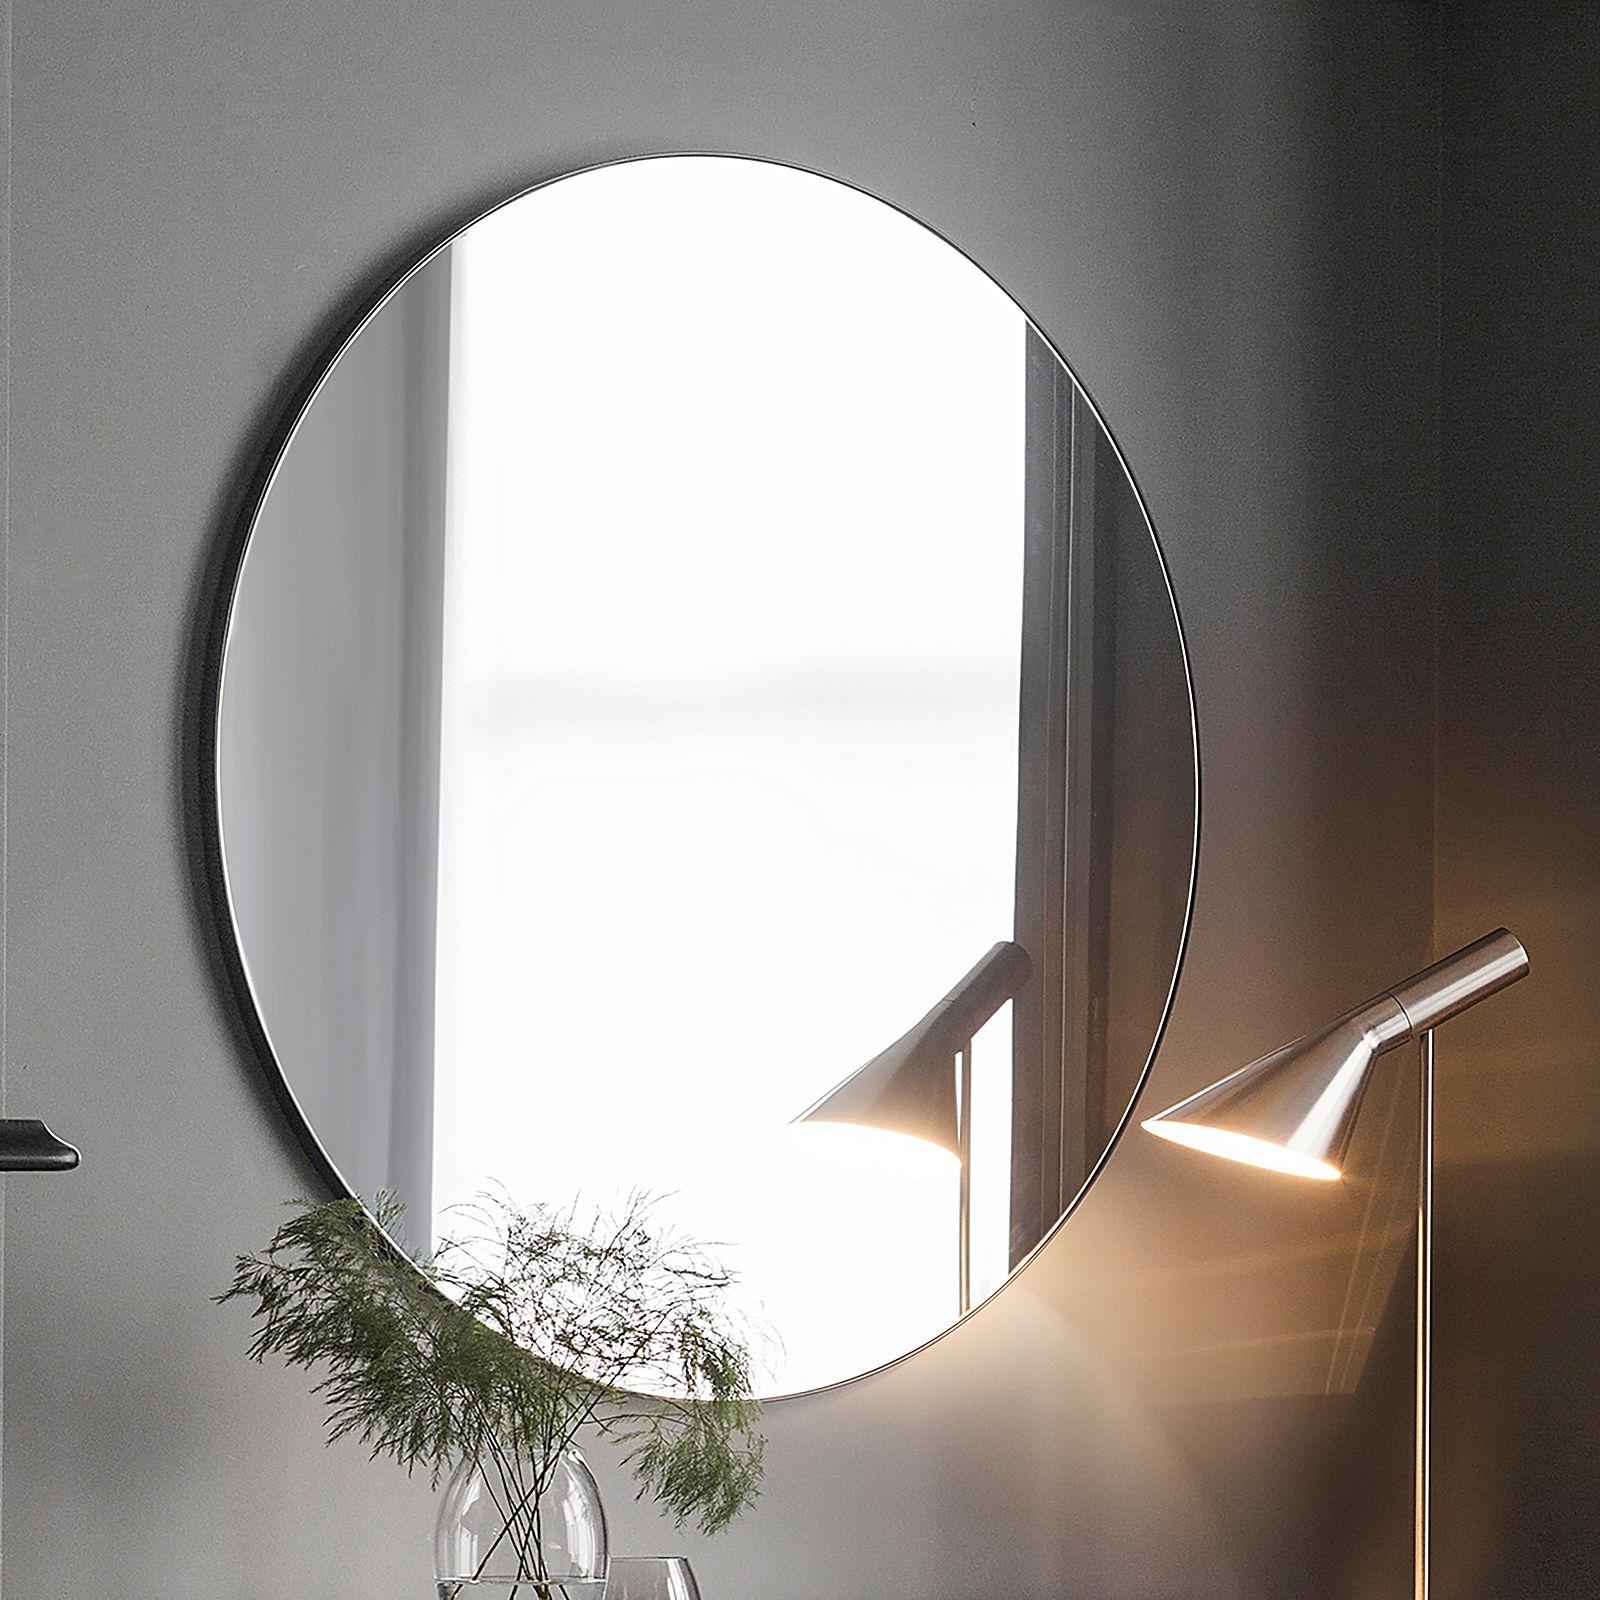 Coralie Round Wall Mirror, Black Intended For 2019 Black Wall Mirrors (View 13 of 20)